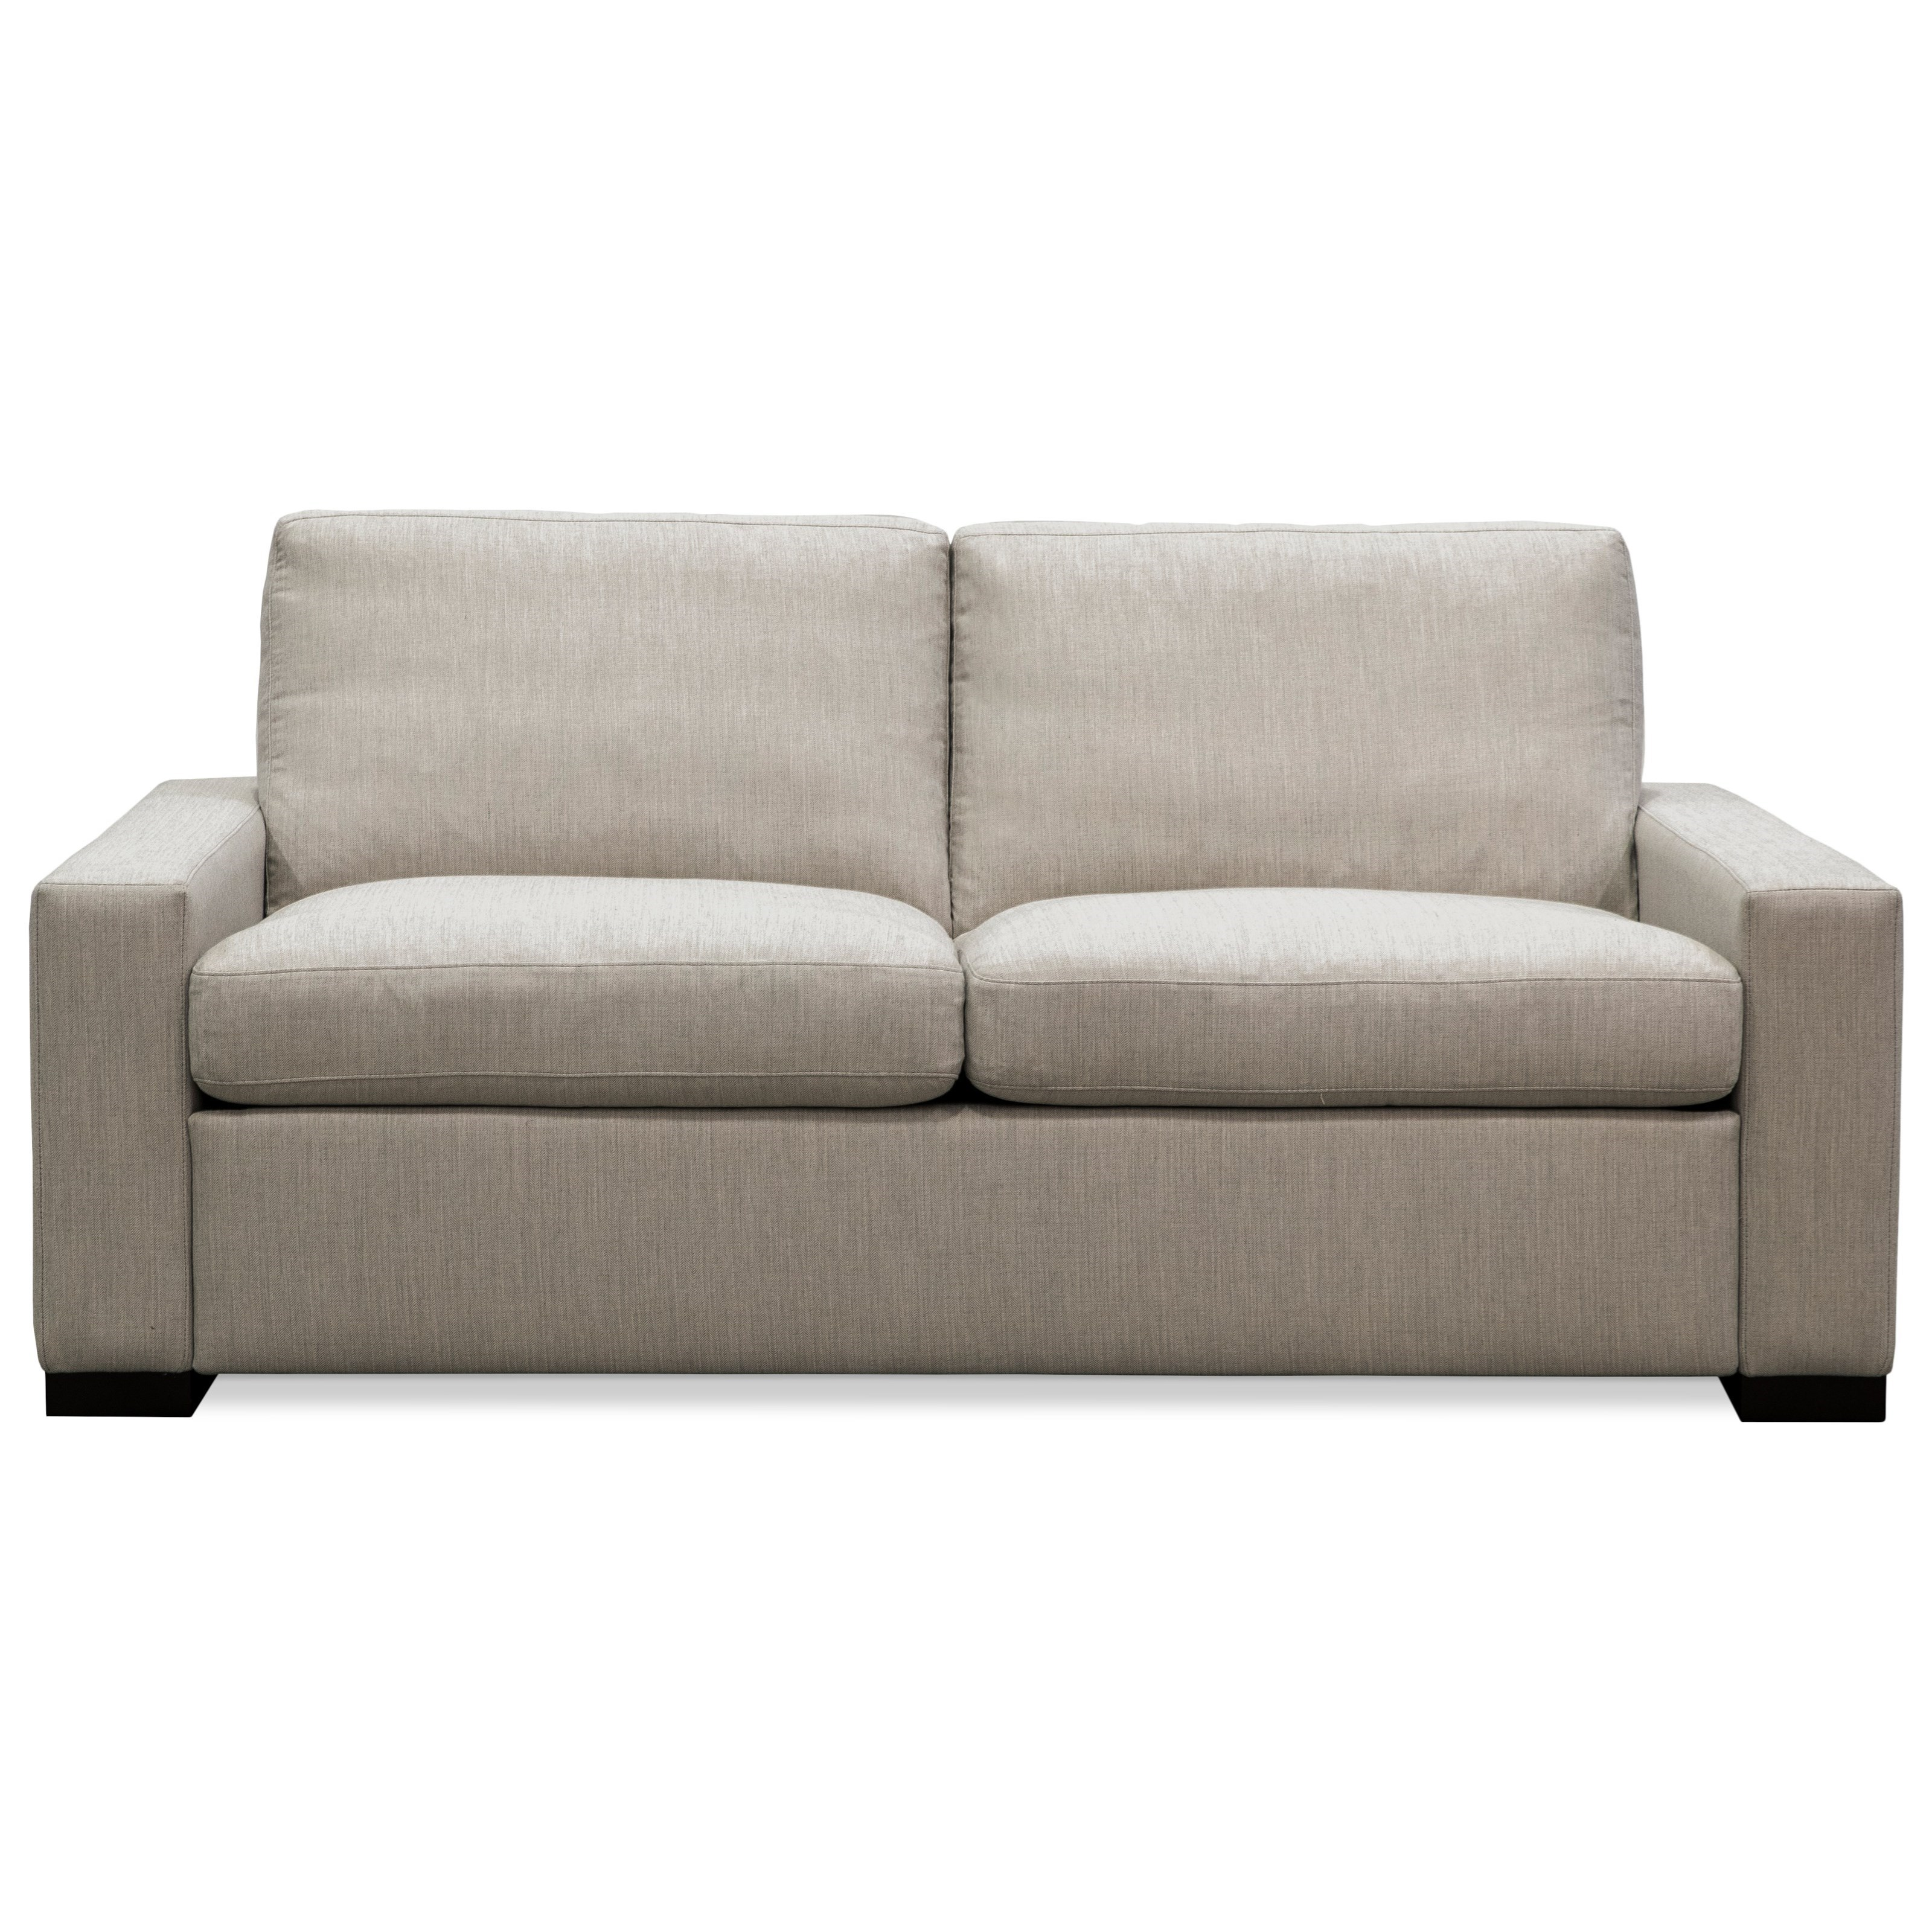 Rogue Queen Sleeper Sofa by American Leather at Baer's Furniture